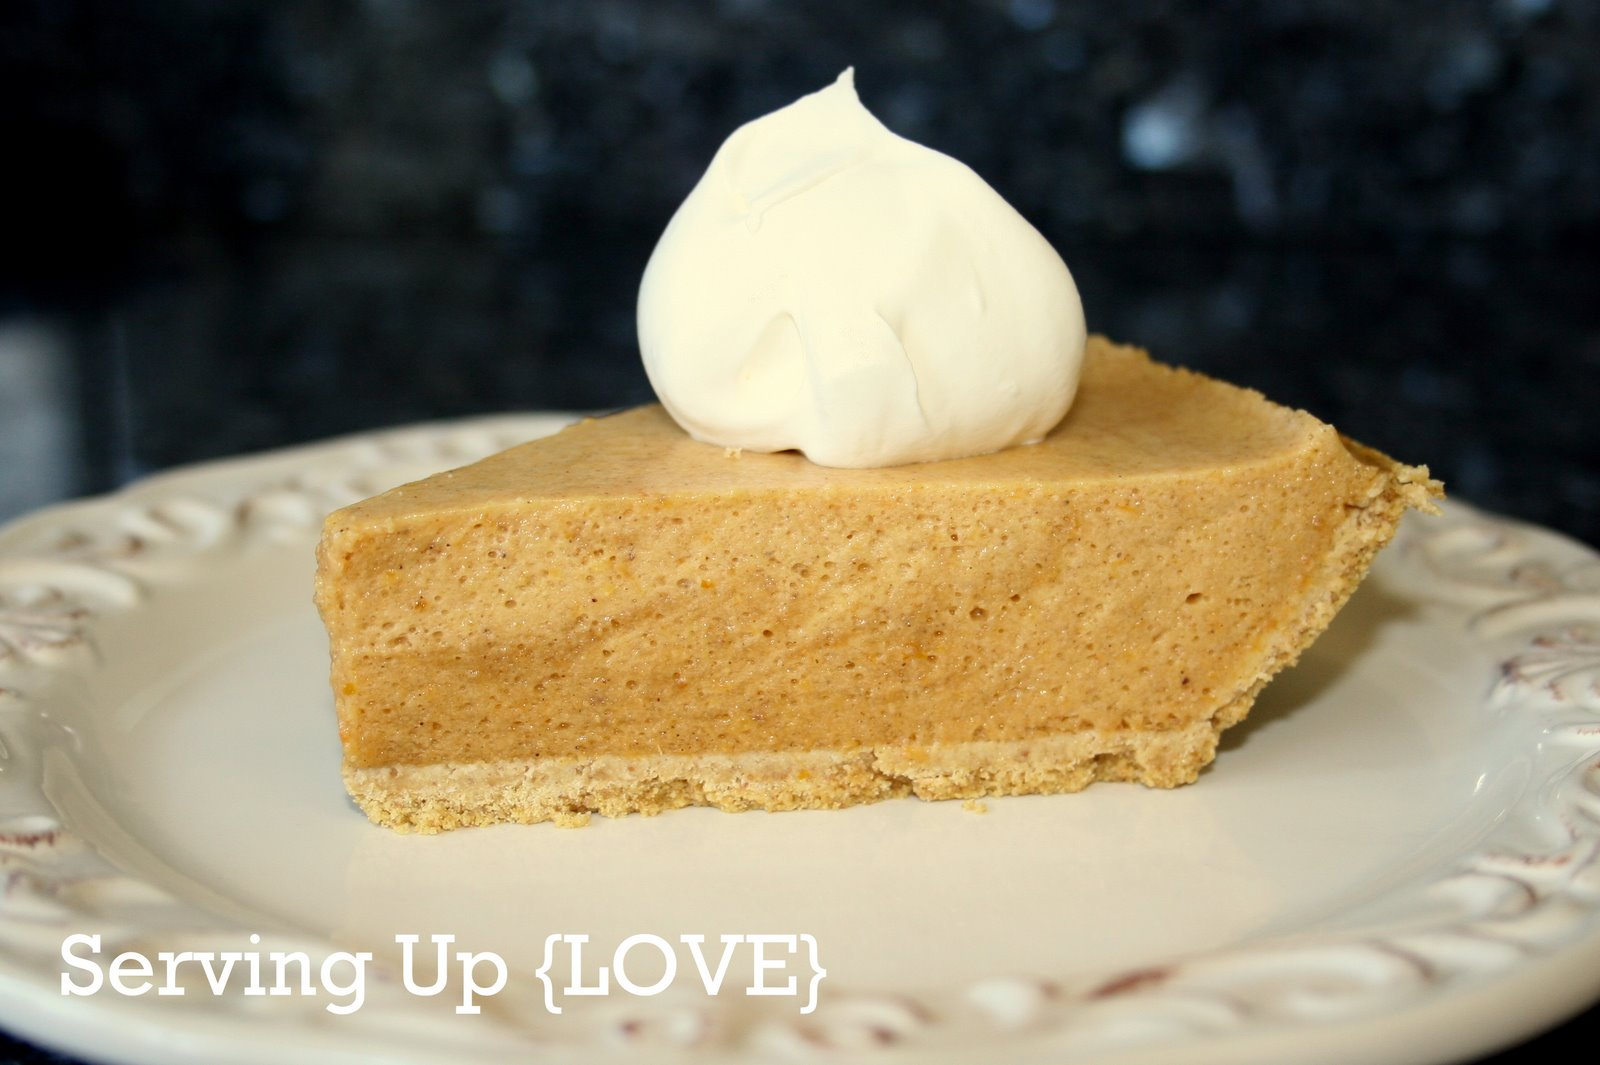 Katherine's Kitchen: Serving Up {Pie}: Pumpkin Chiffon Pie